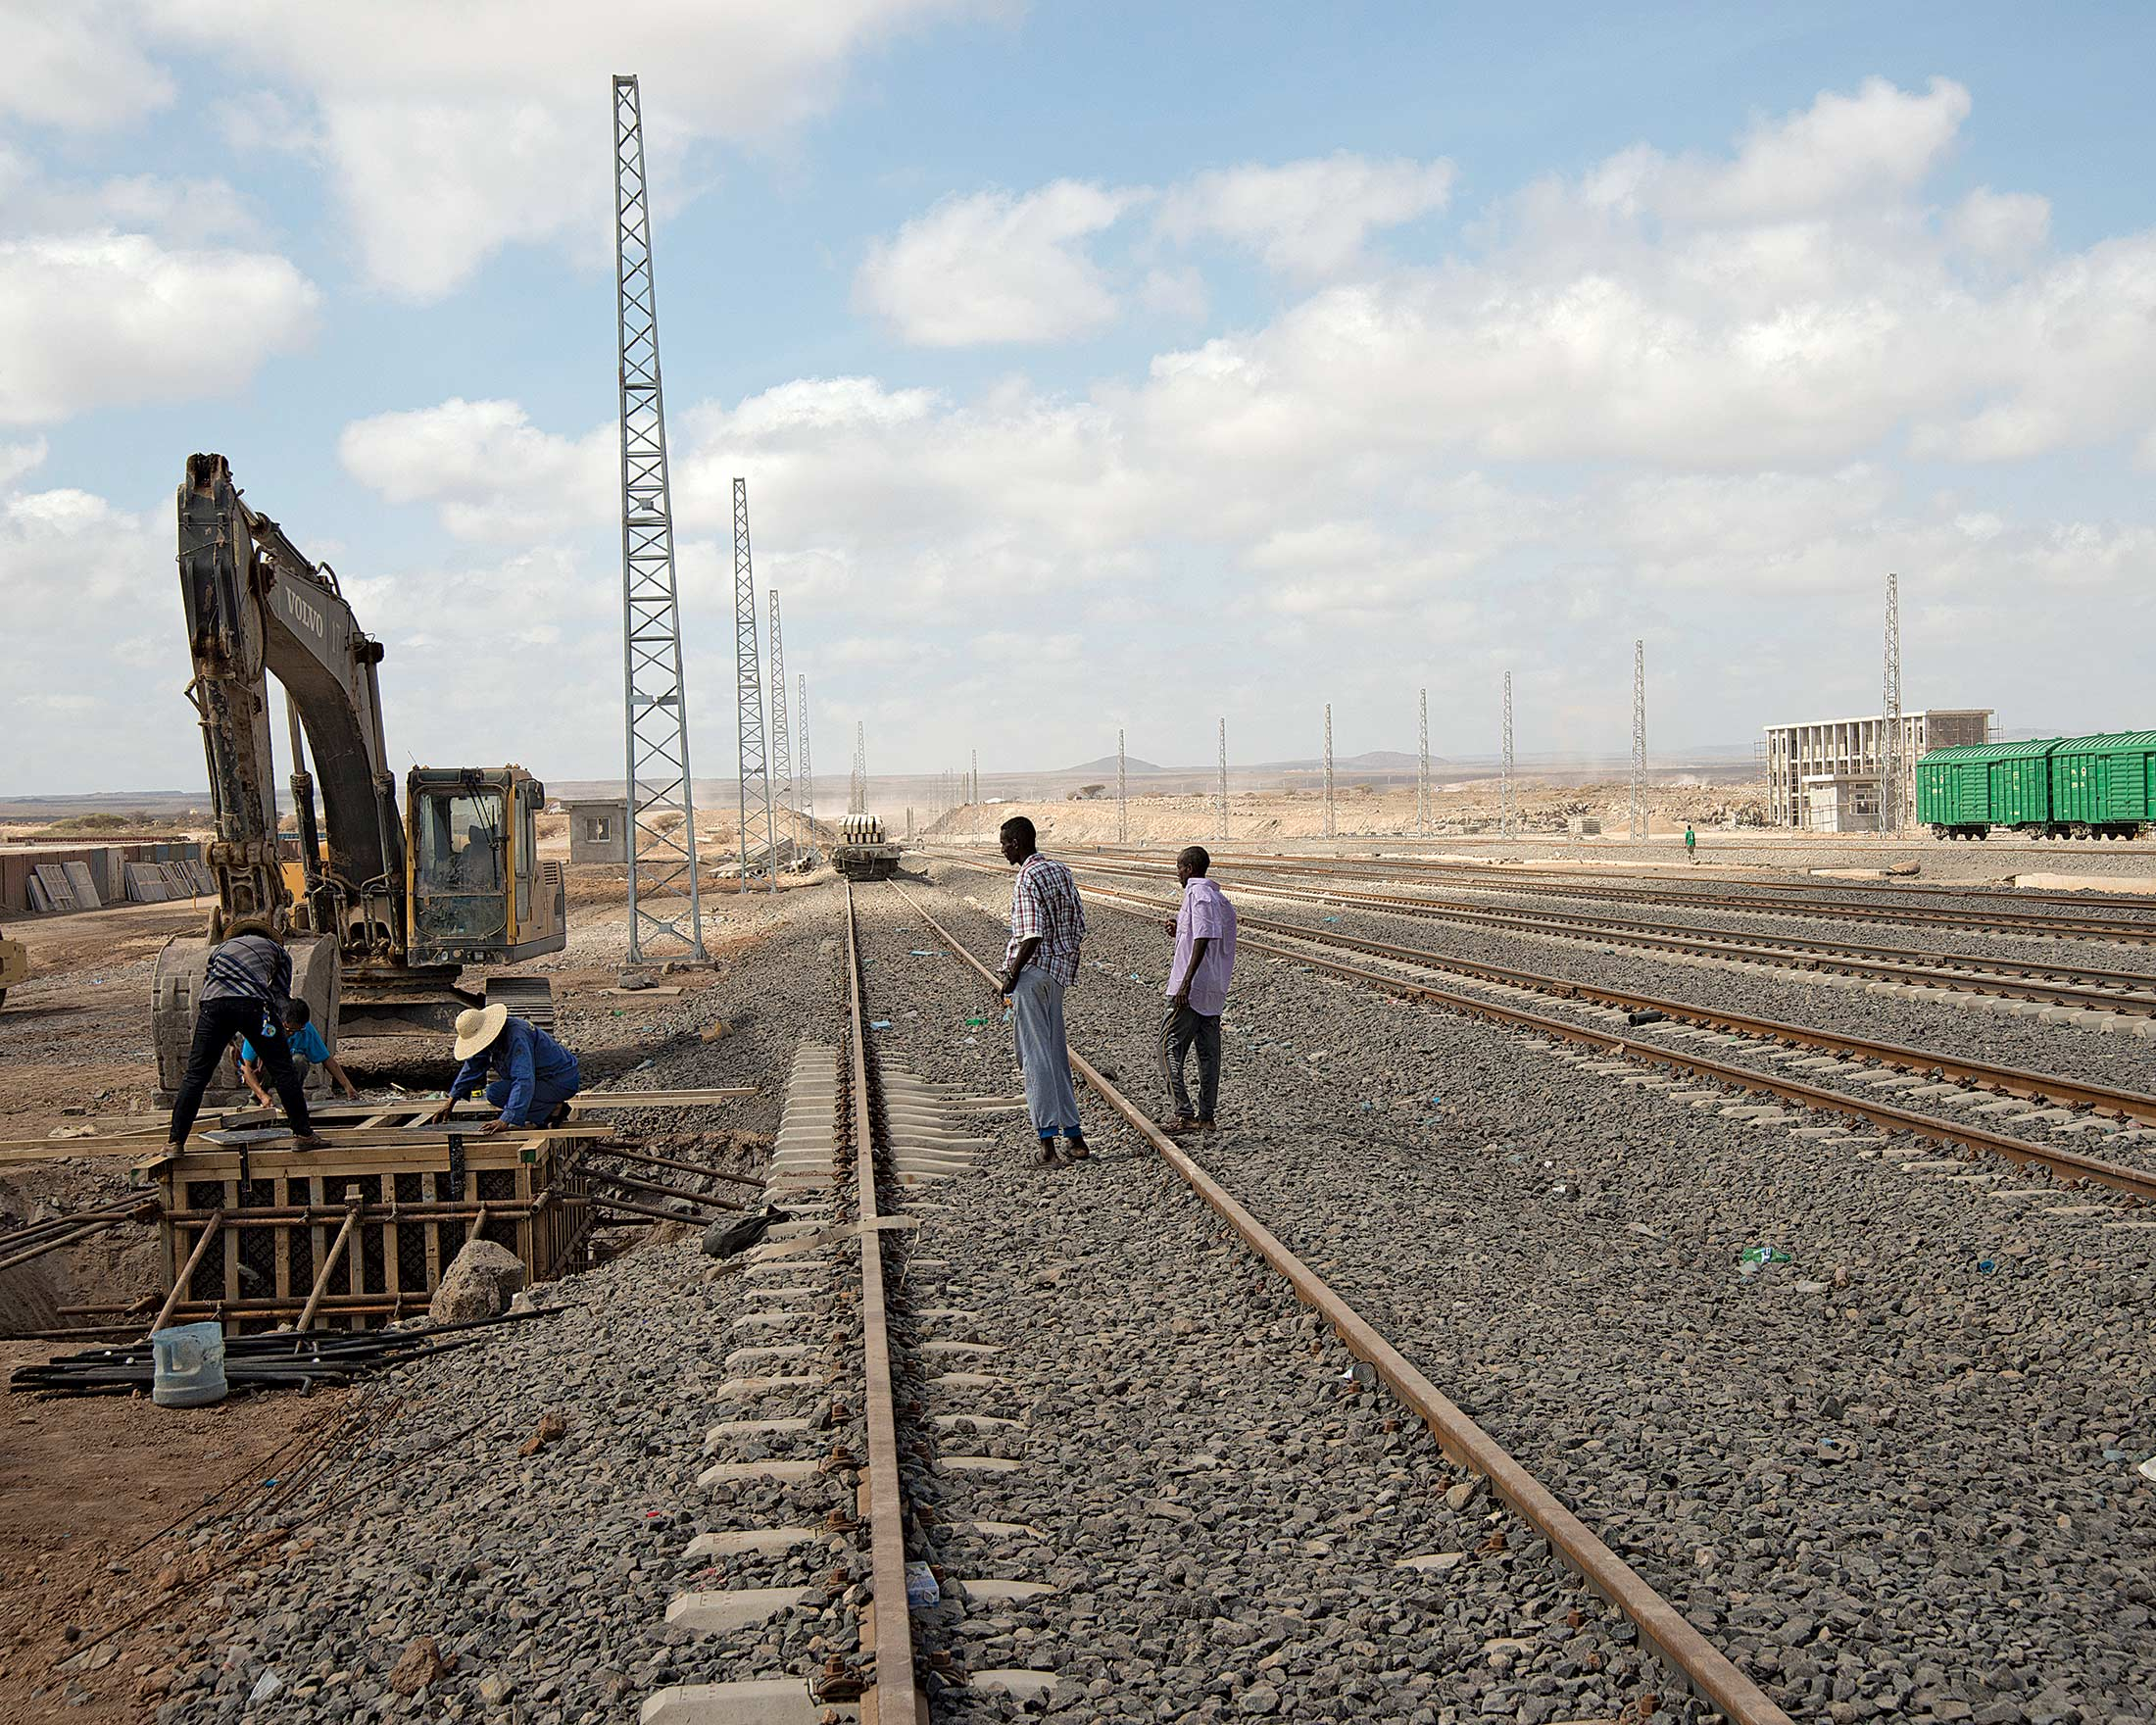 Railroad in Djibouti